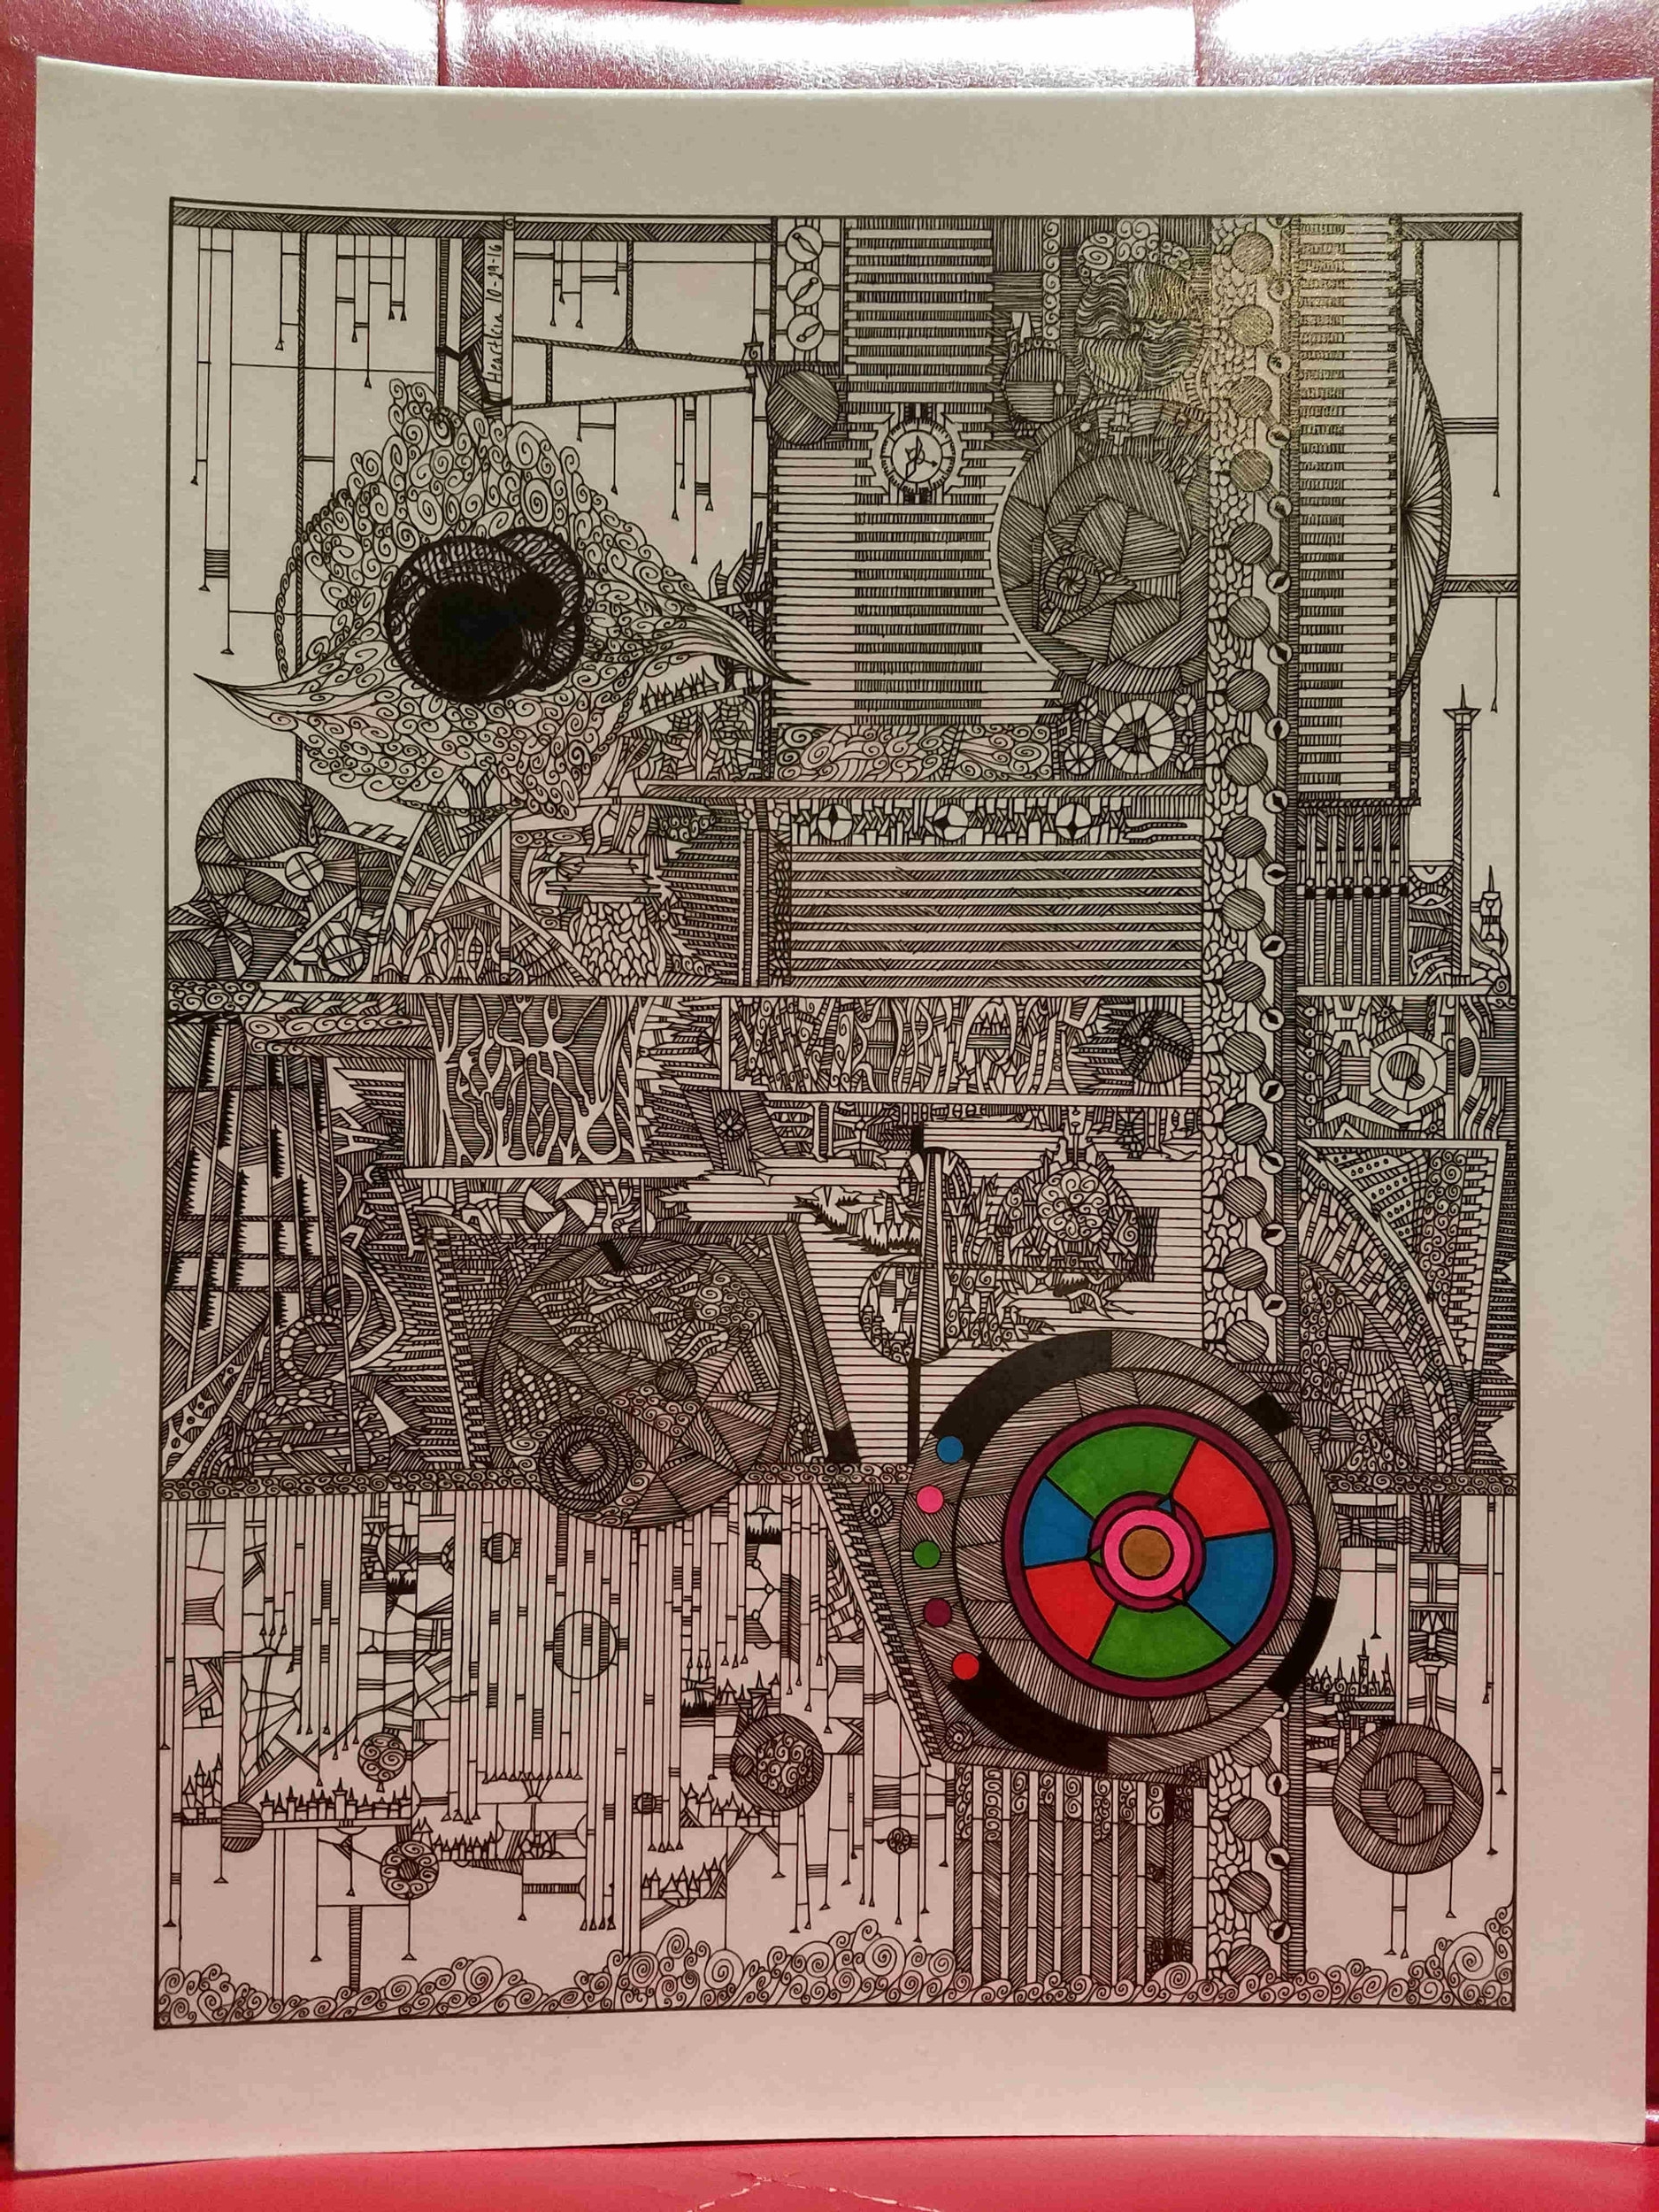 TOM HEARTLEIN  - Galesburg, IL   Clockwork Complex   pen and marker on Bristol